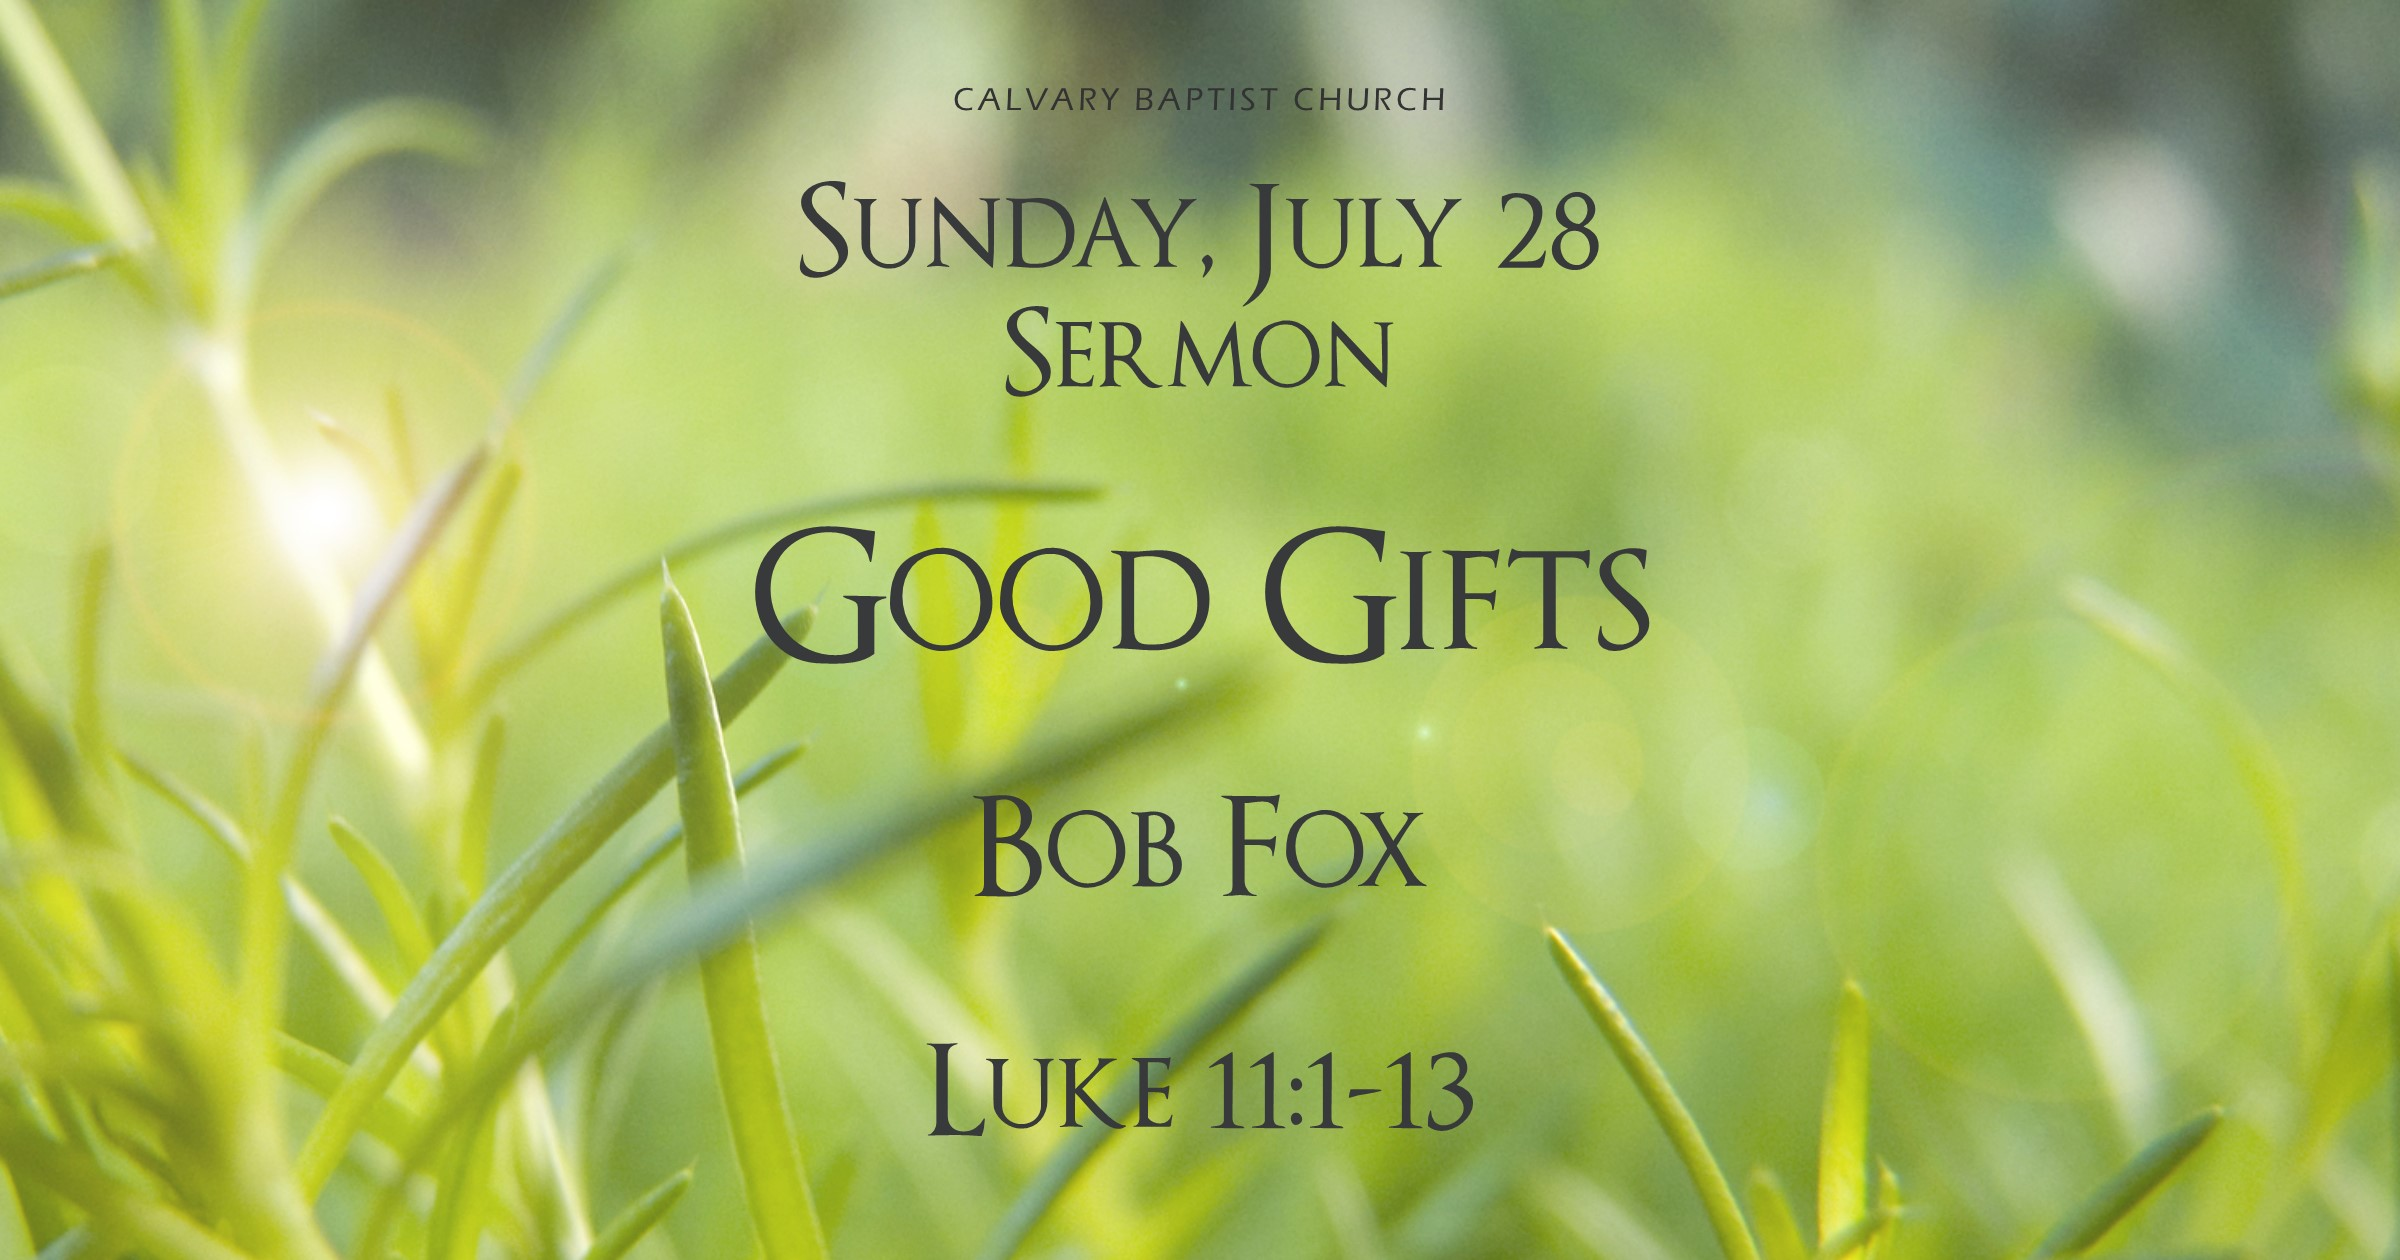 July 28 sermon fb image.jpg